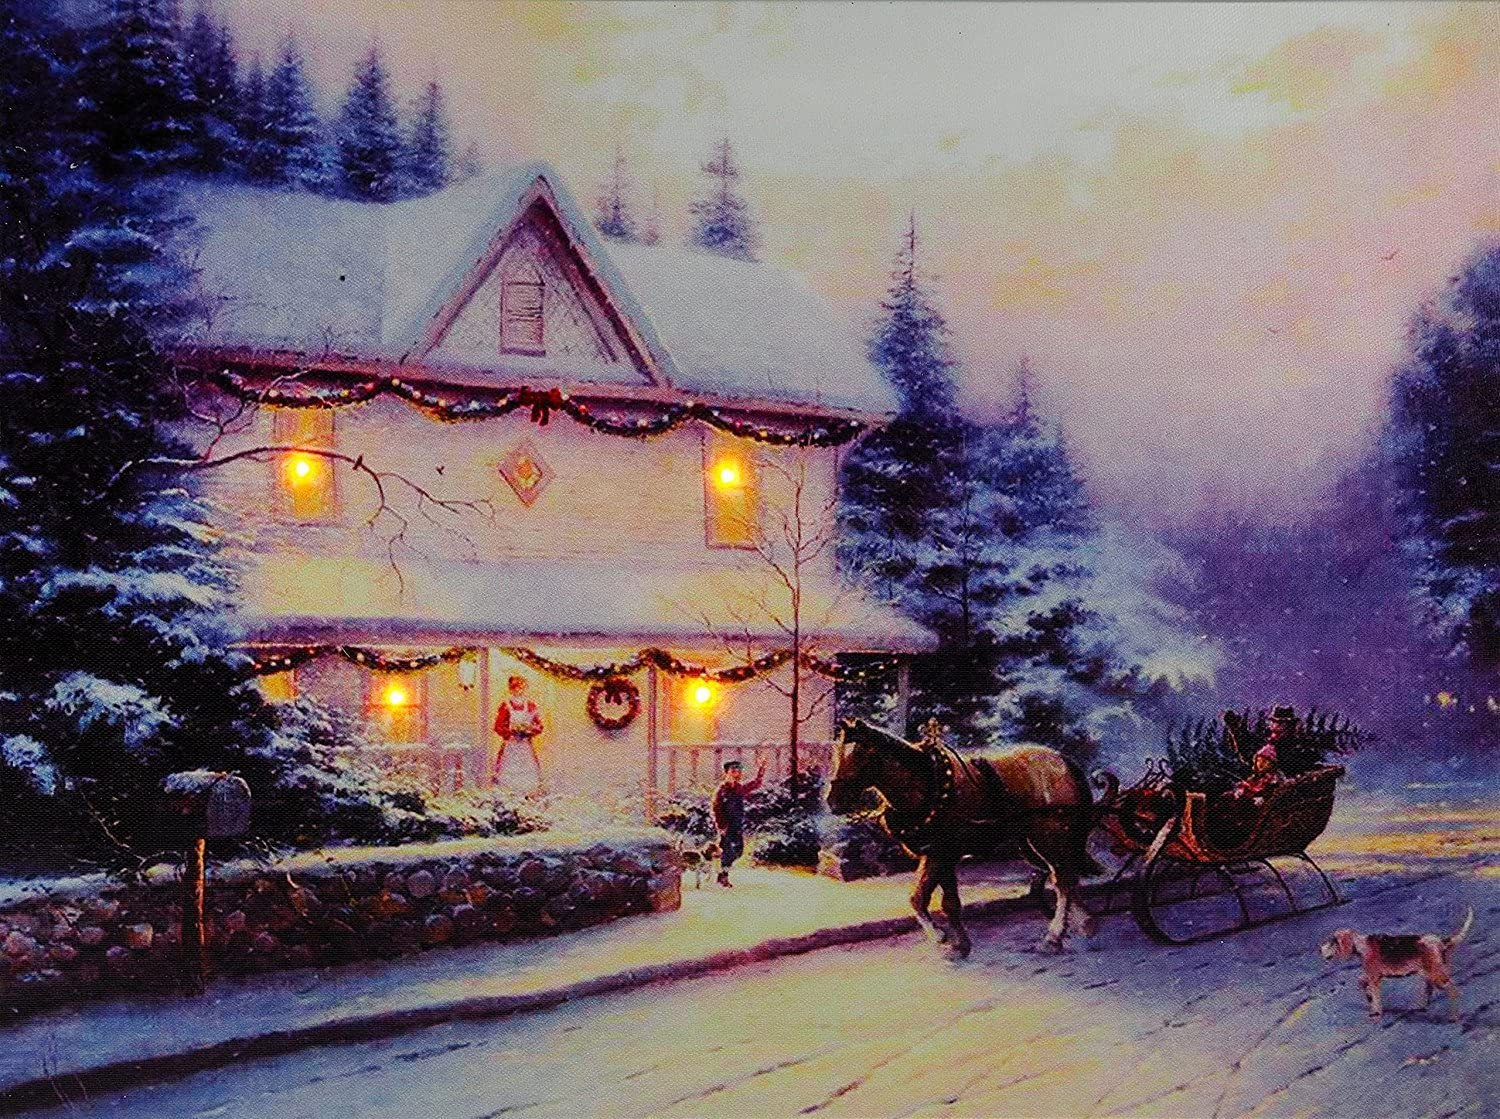 Christmas Decoration Light Up Led Canvas Wall Picture House And Horse Sleigh Amazon Co Uk Kitchen Home